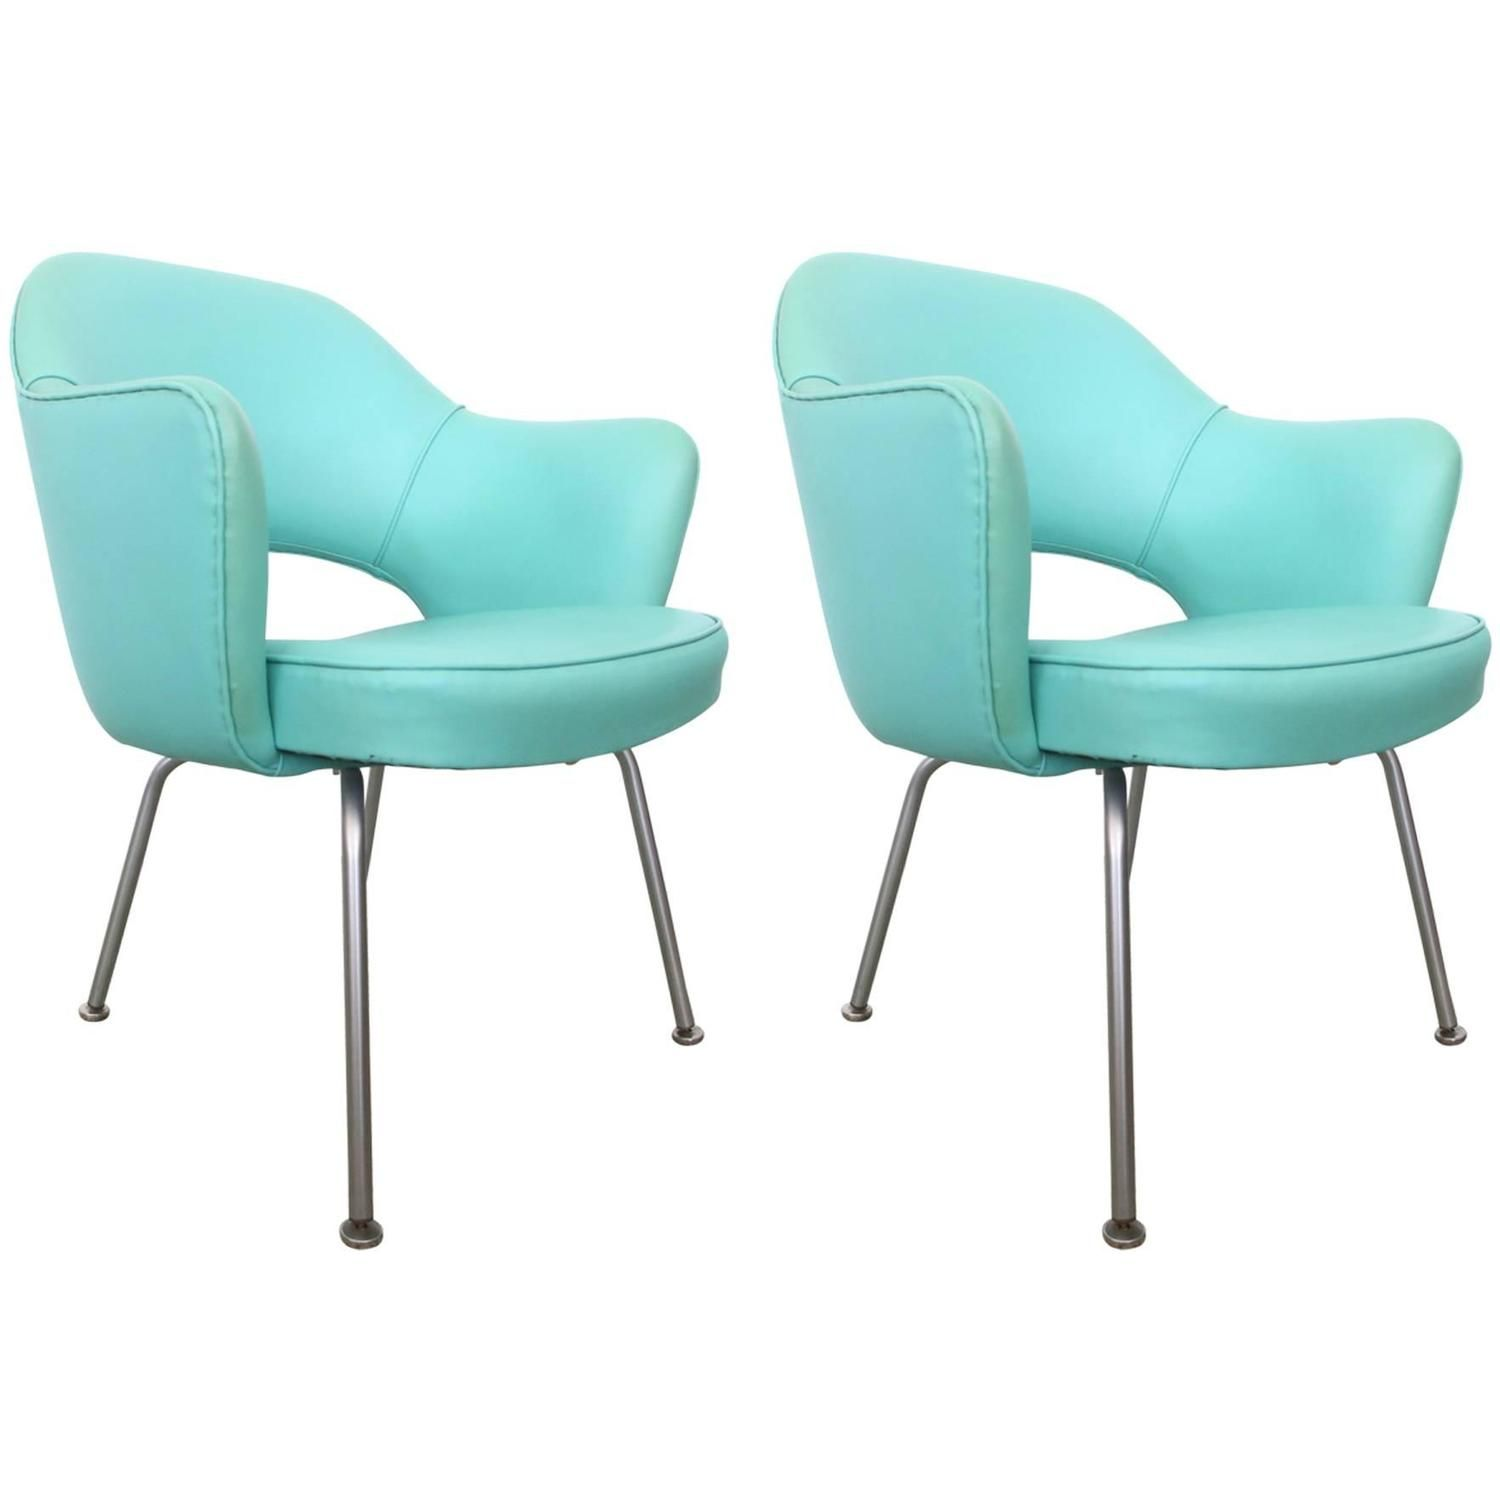 Pair Of Vintage Eero Saarinen Executive Chairs By Knoll From A